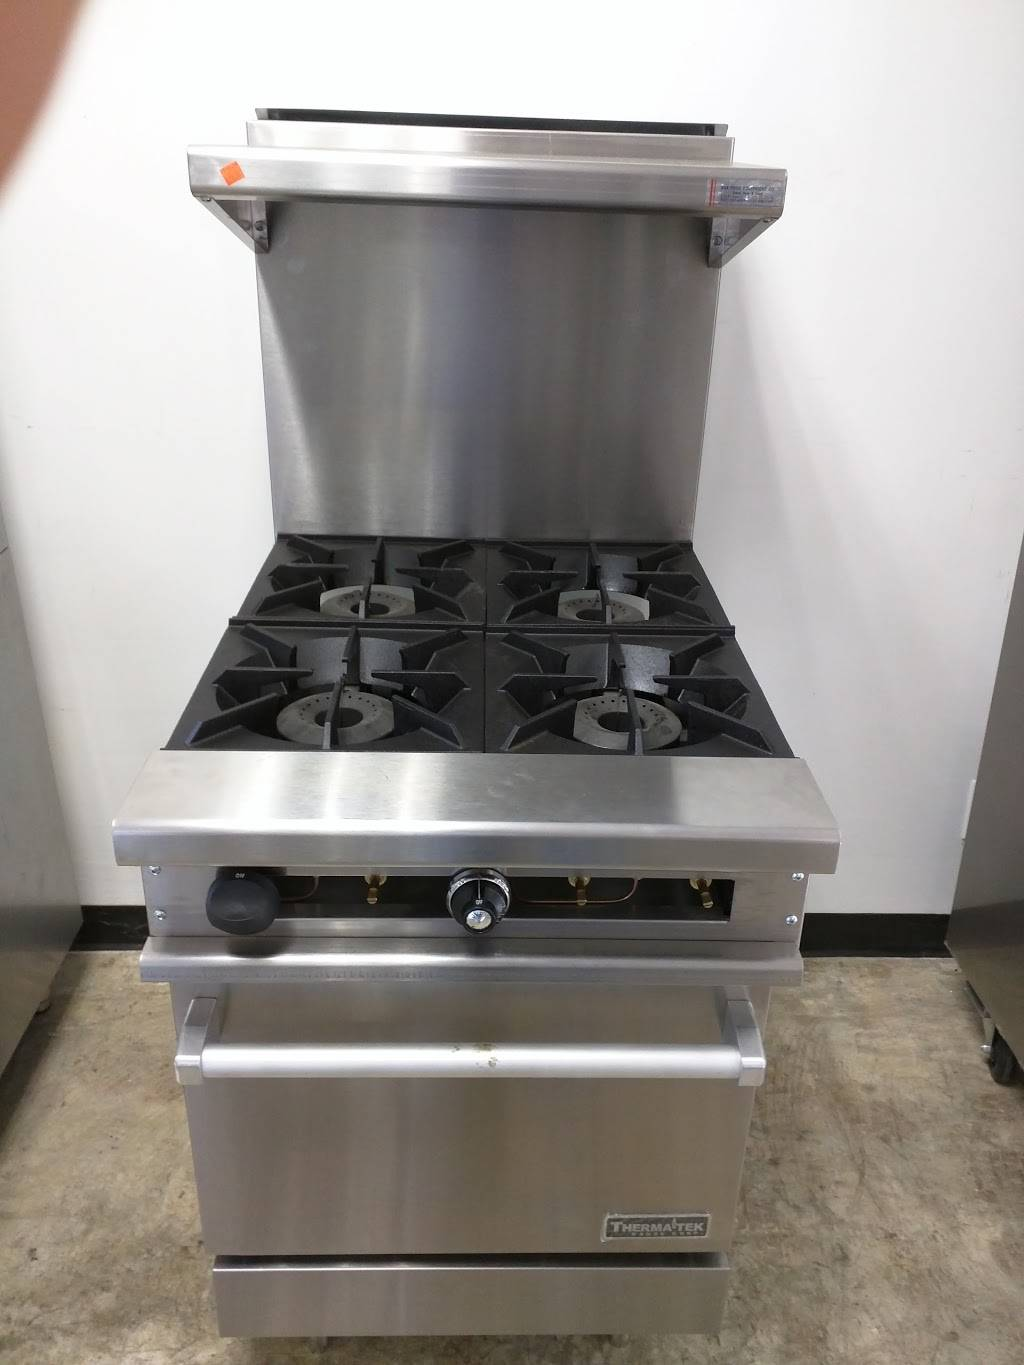 AAA Food Equipment Co of Austin - furniture store  | Photo 7 of 9 | Address: 615 W Yager Ln, Austin, TX 78753, USA | Phone: (512) 251-4560